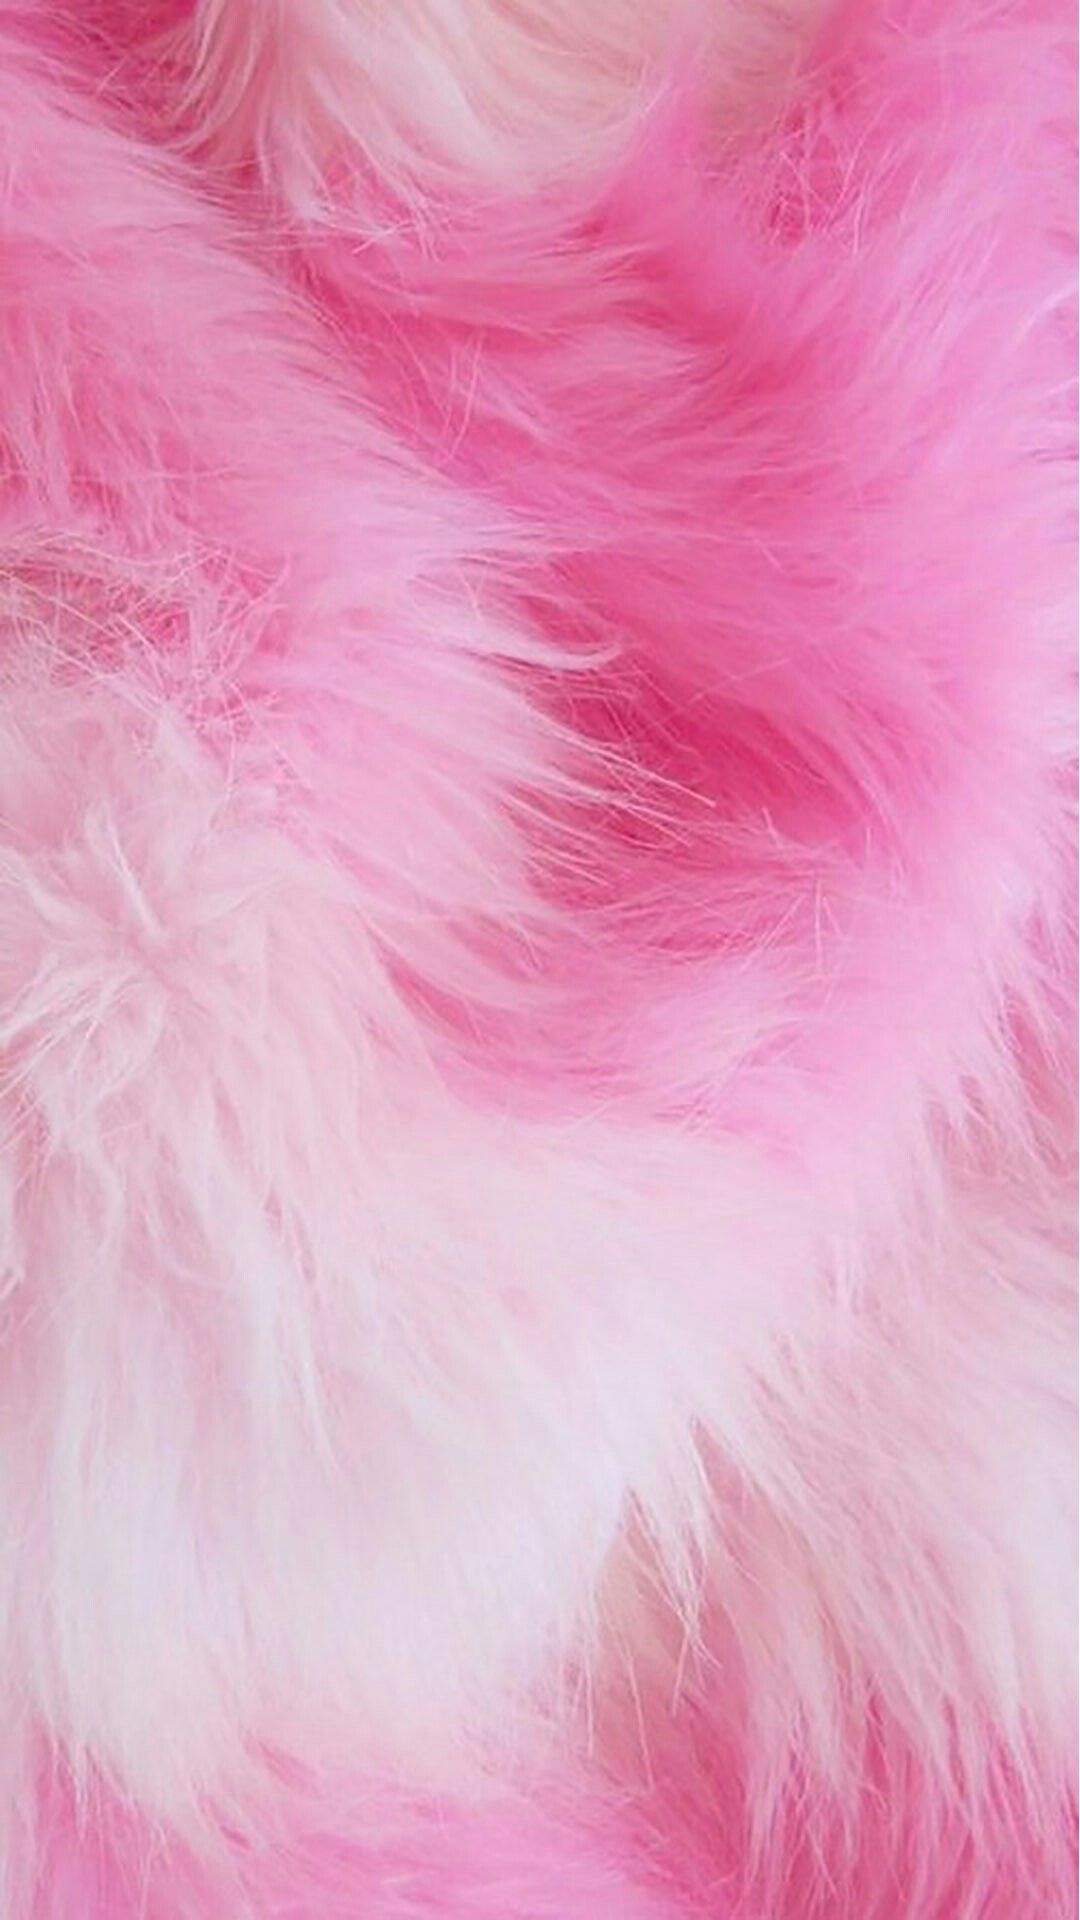 Pin by Kathrine SeeKatDo on SELFspiration Pink fur